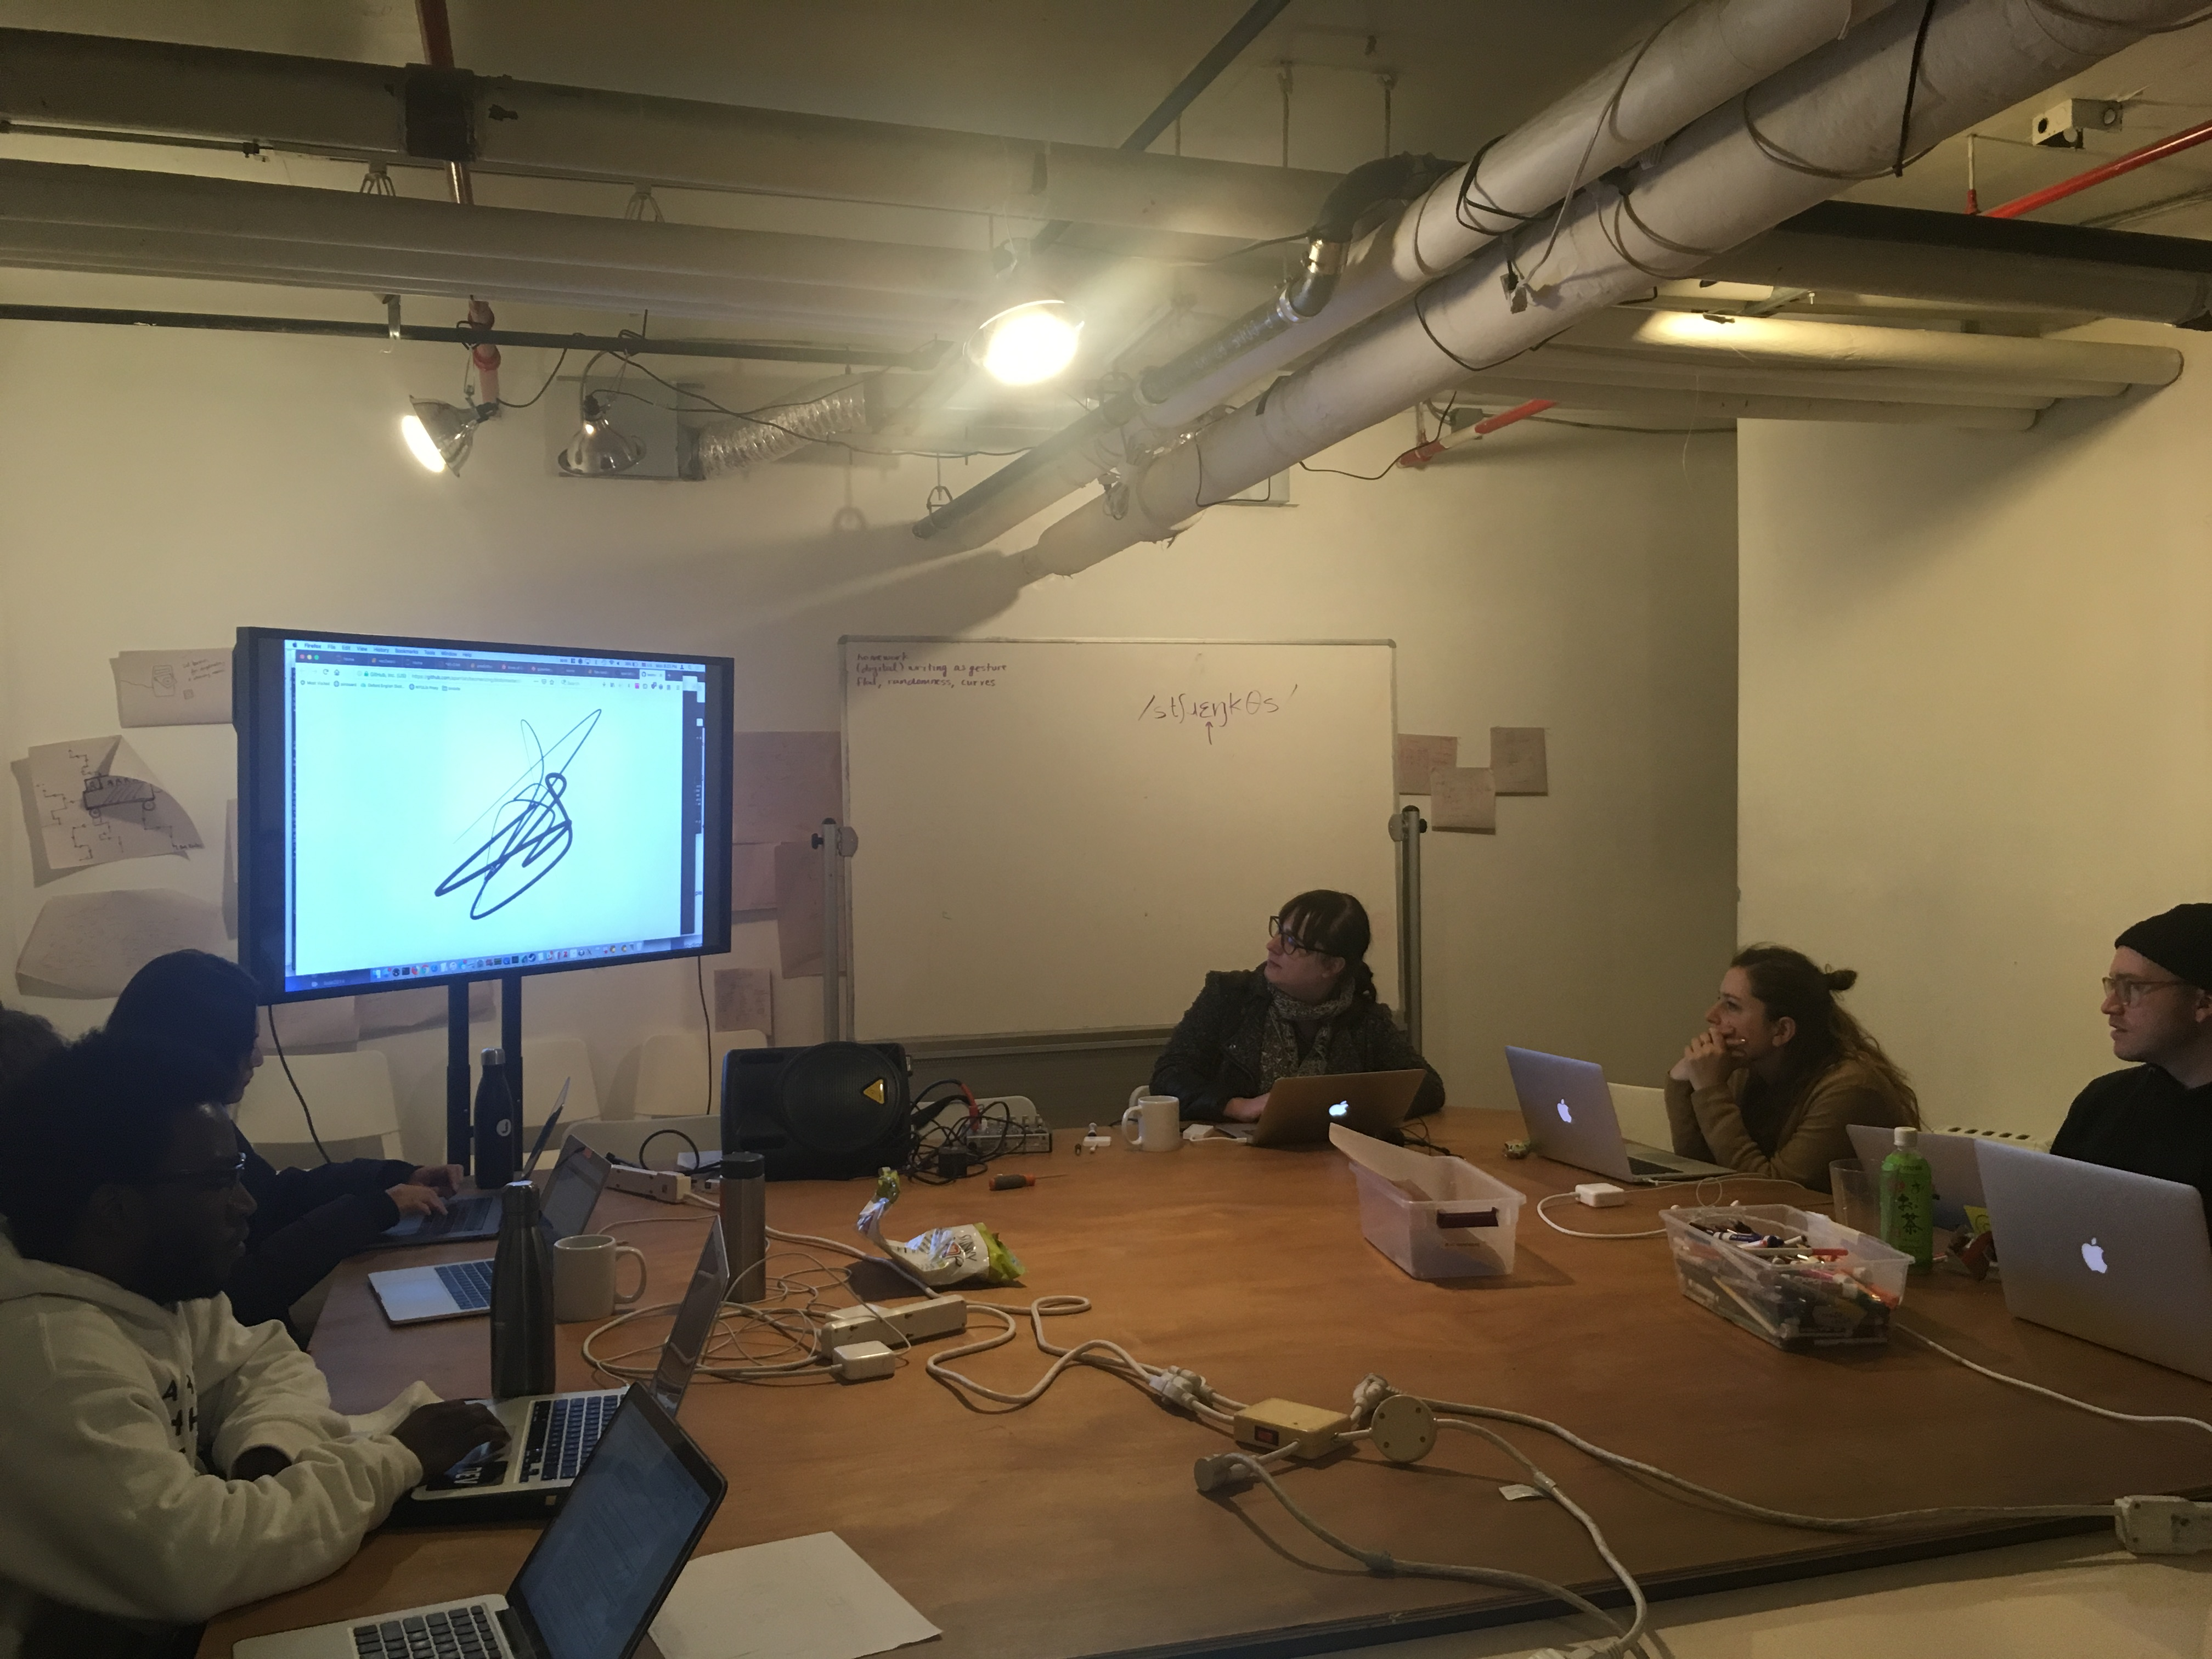 """""""Allison Parrish, discussing letterforms on whiteboard"""""""